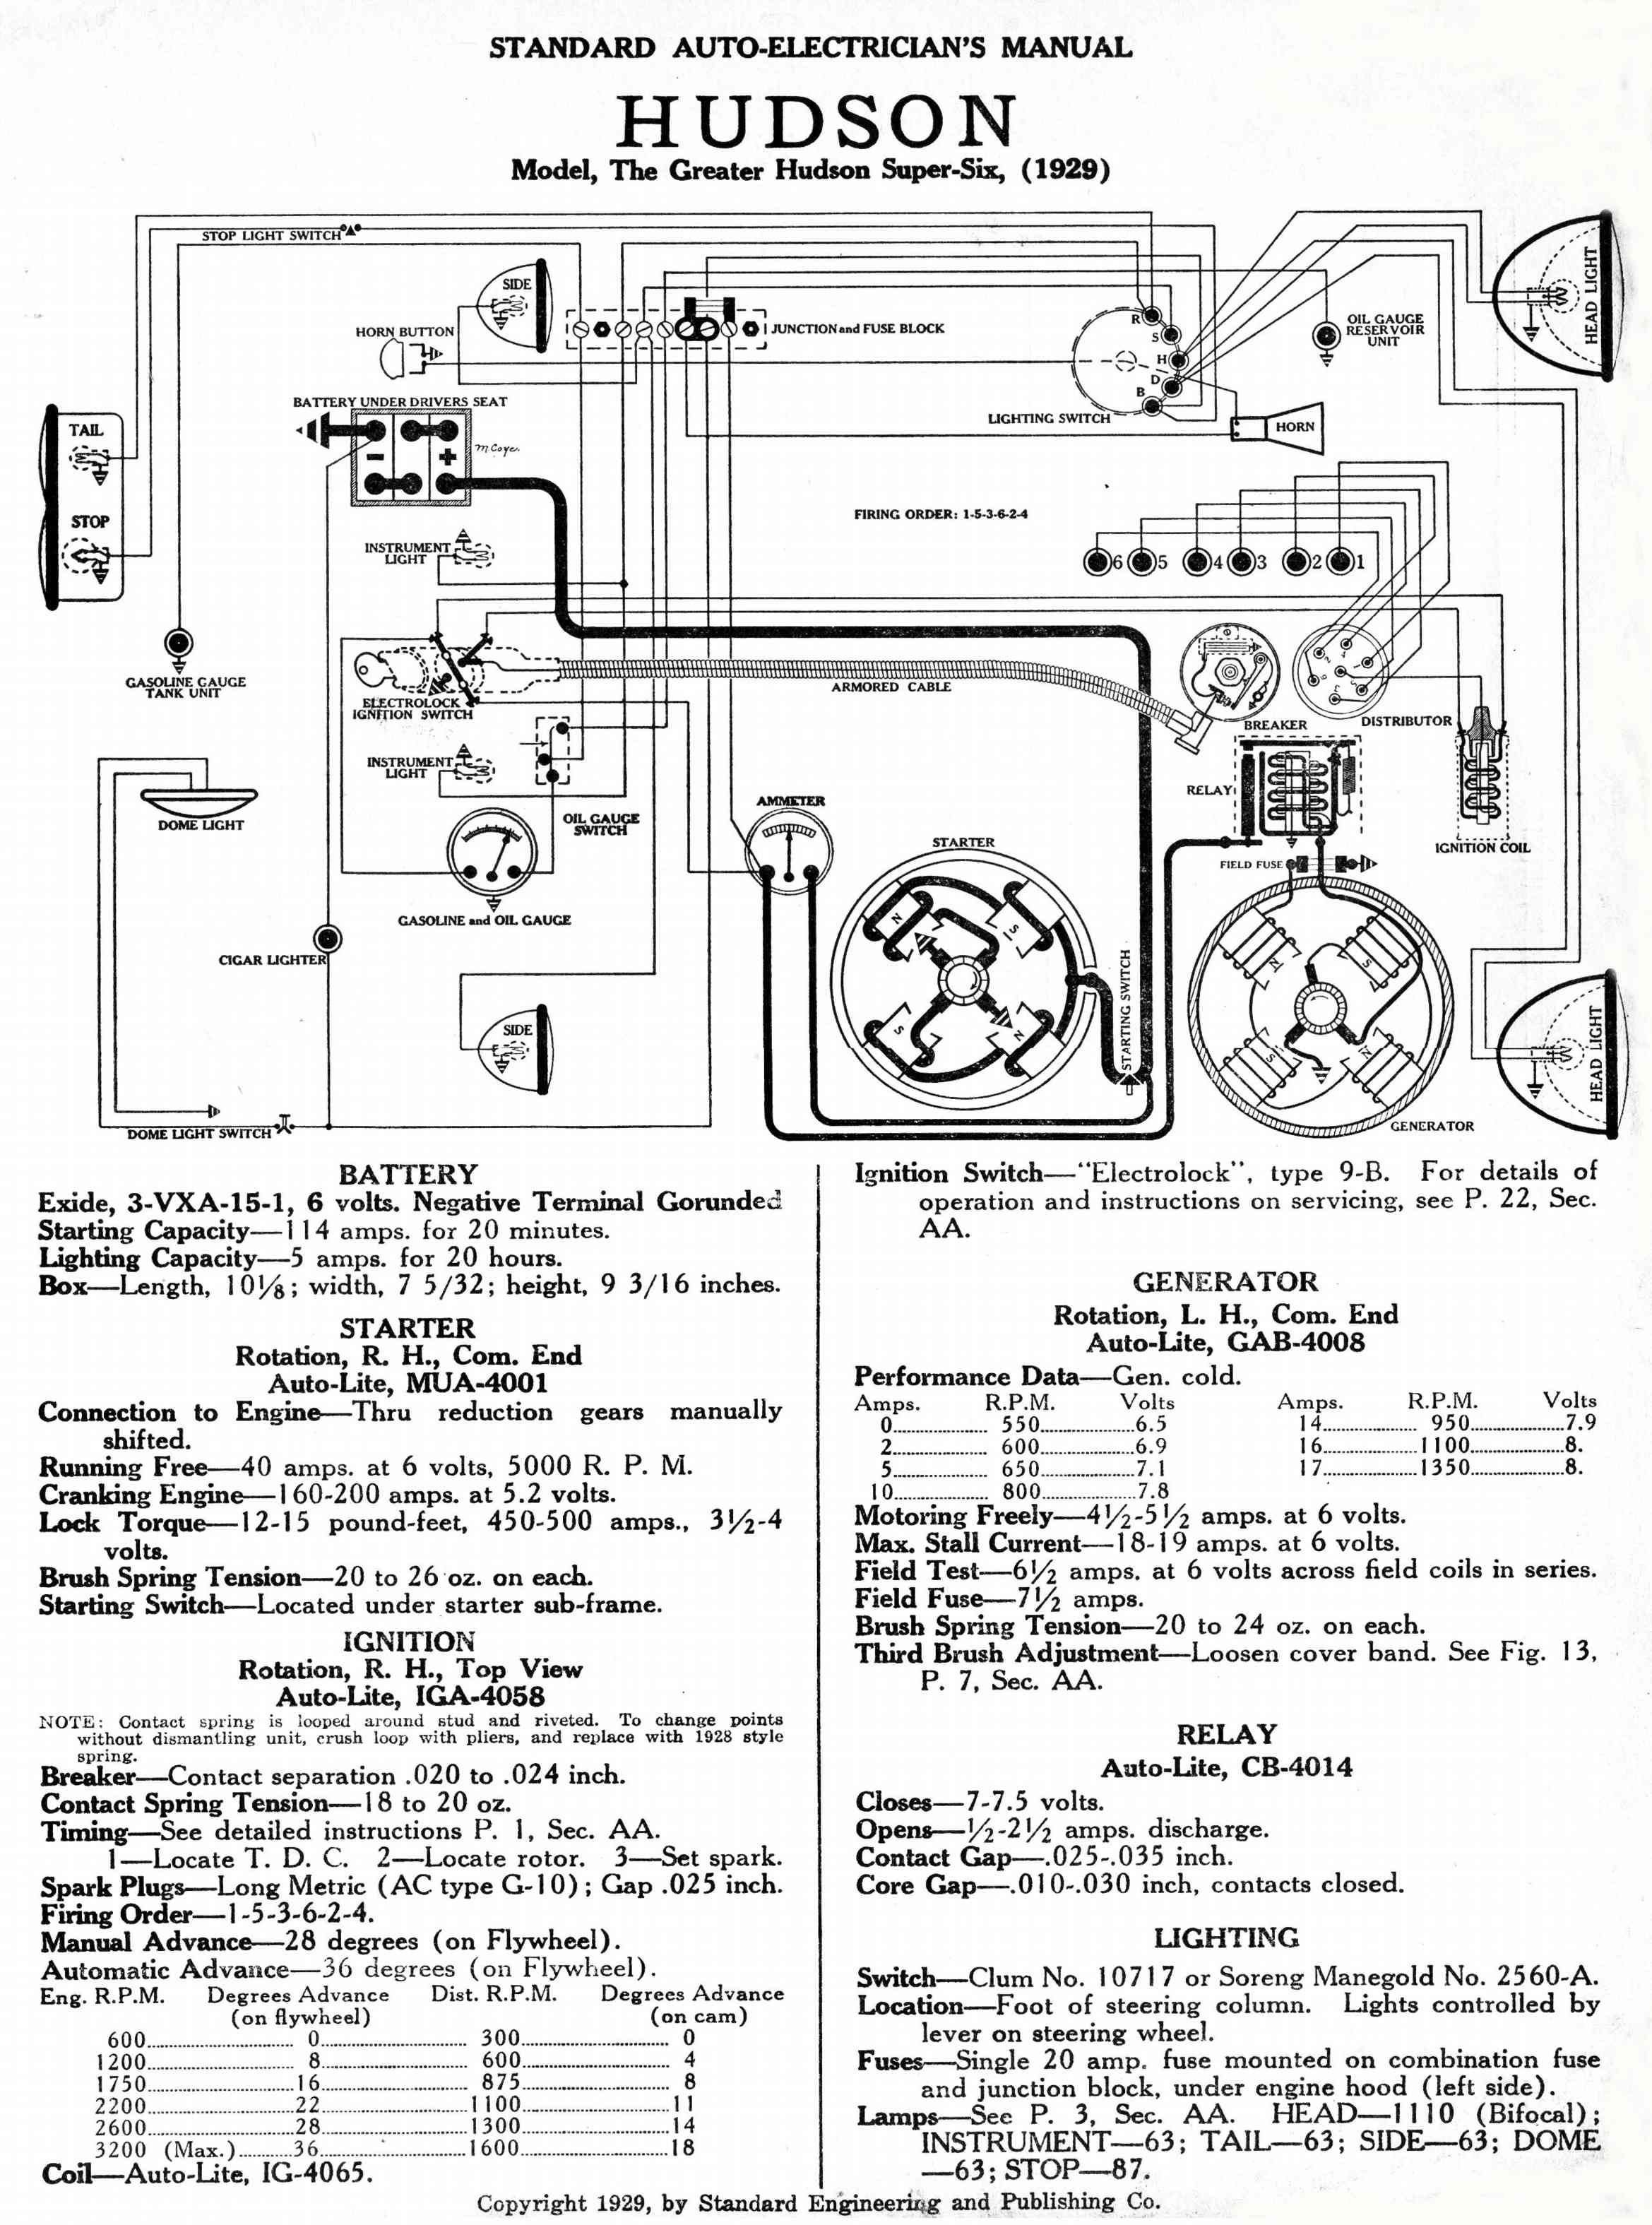 29_elec_diagram hudson manuals tech index delco electric motor wiring diagram at bayanpartner.co